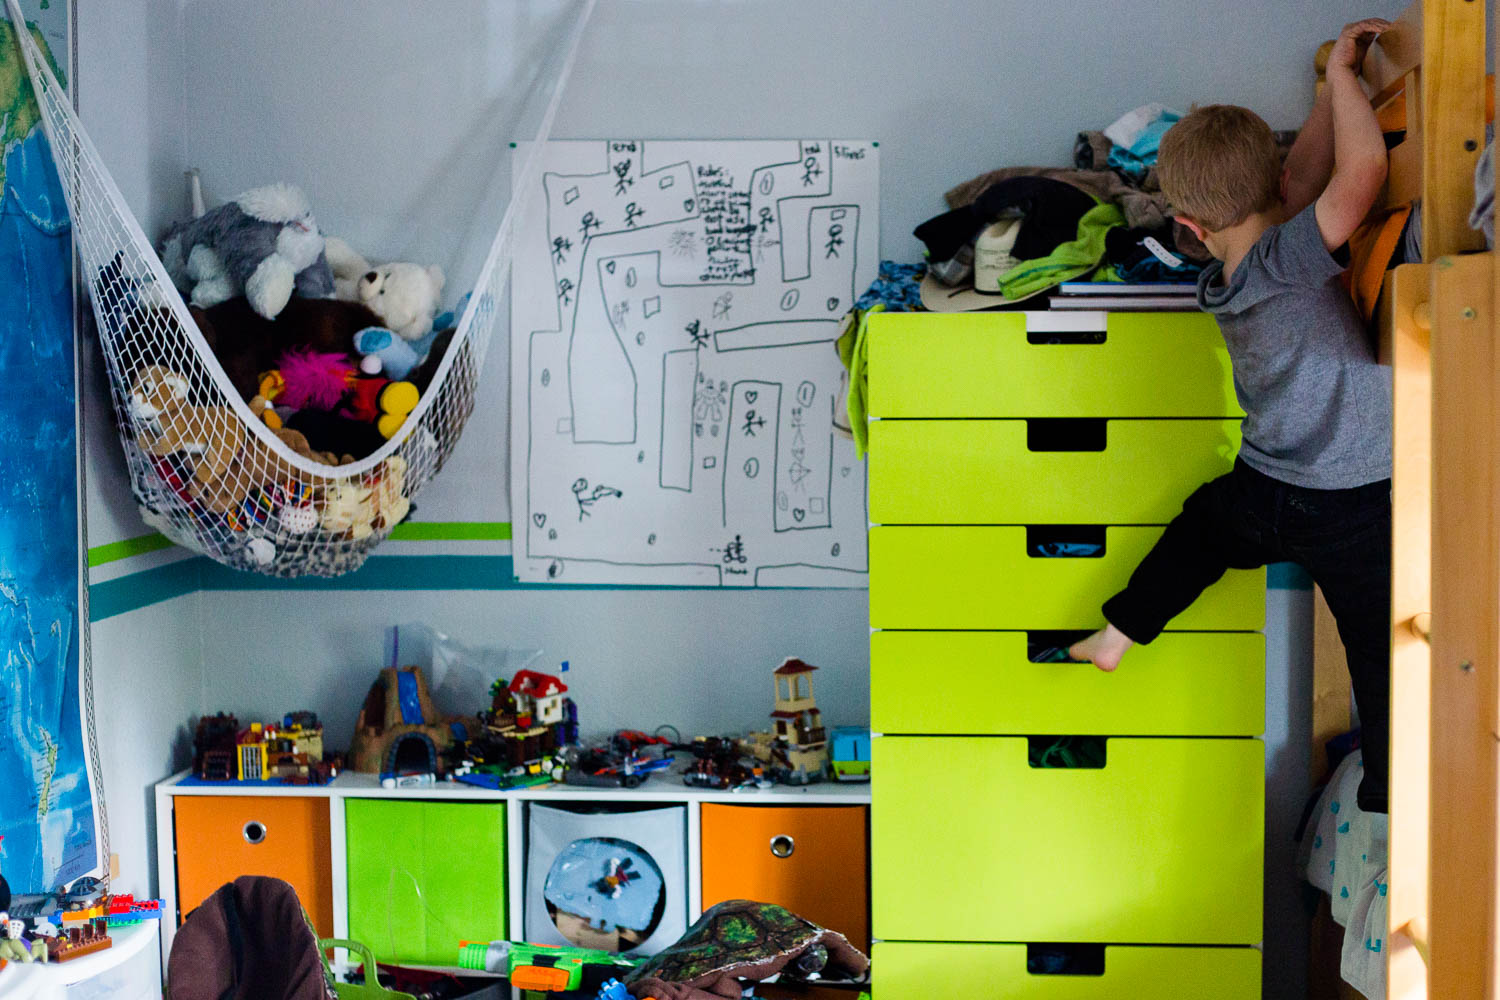 Boy climbing up bright green cabinet dresser to get onto top bunk bed